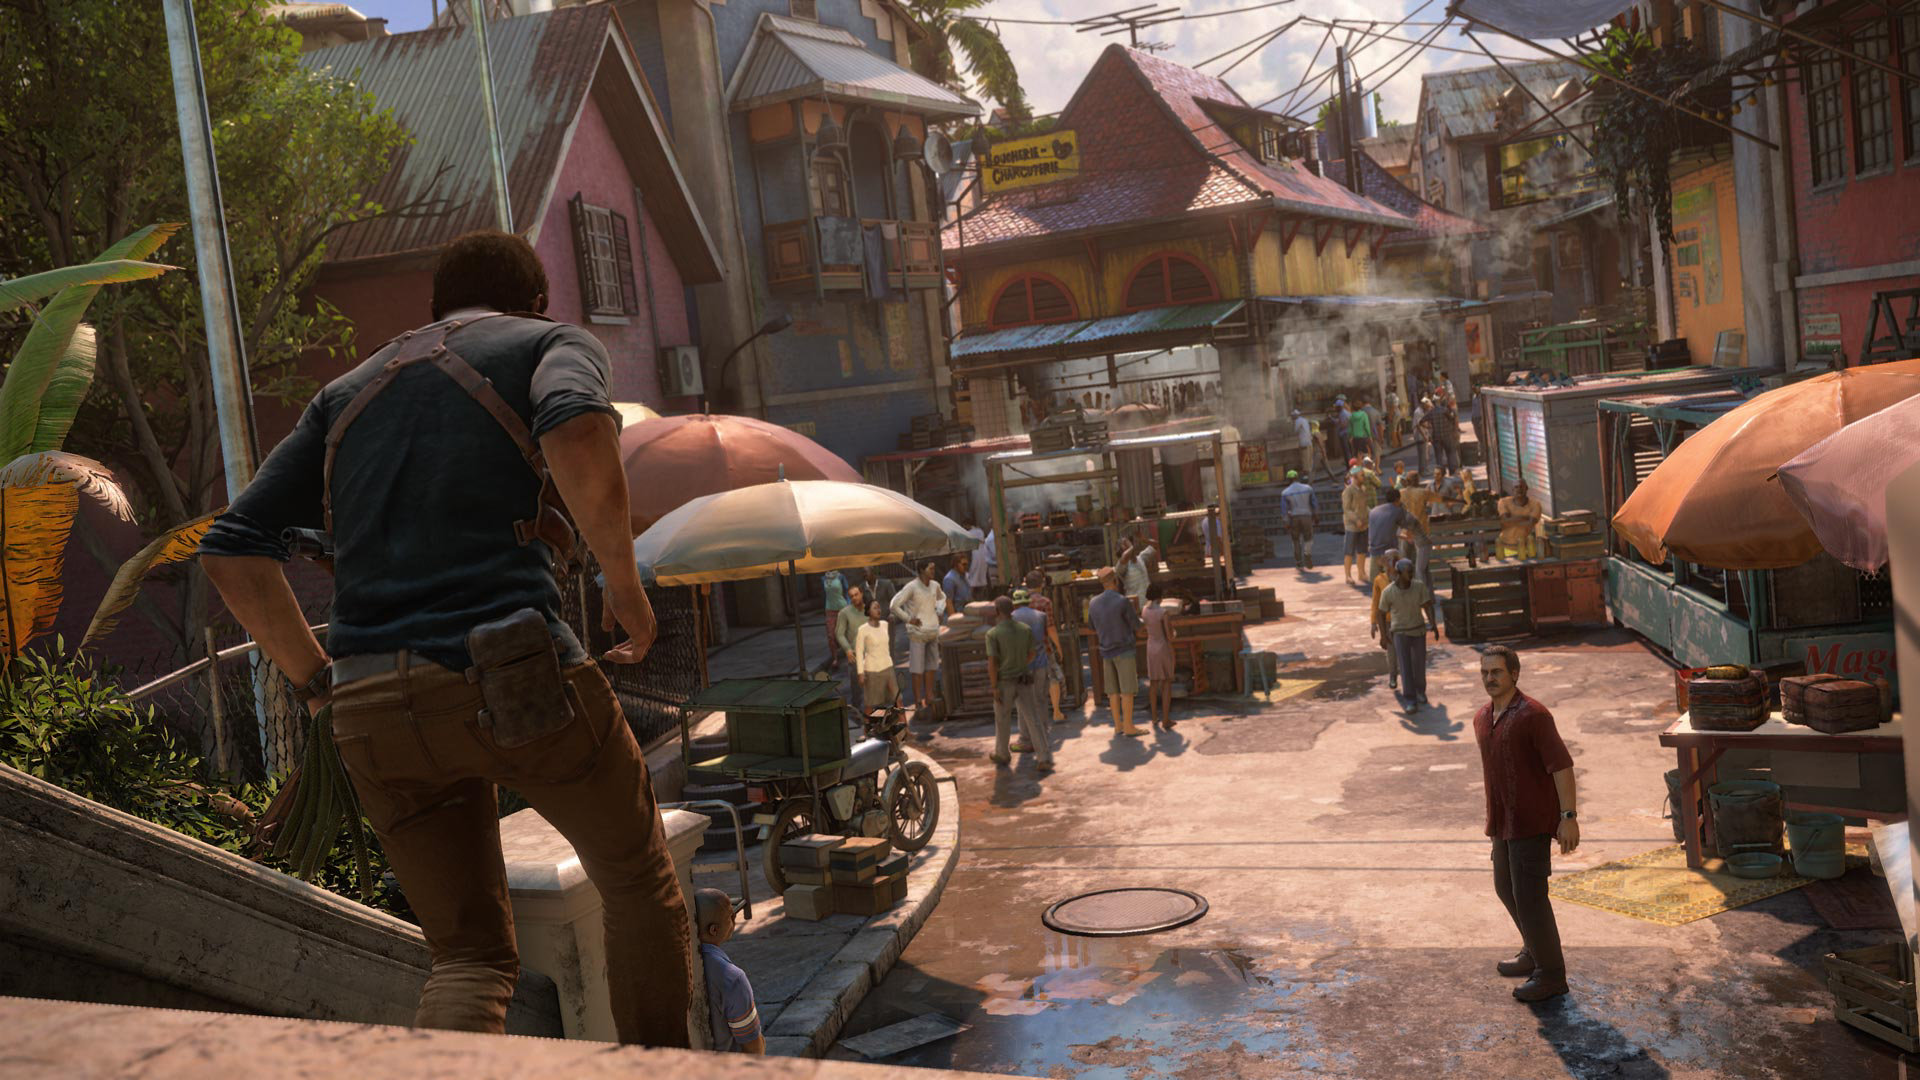 uncharted-4-screen-16-ps4-eu-23june15.jpg